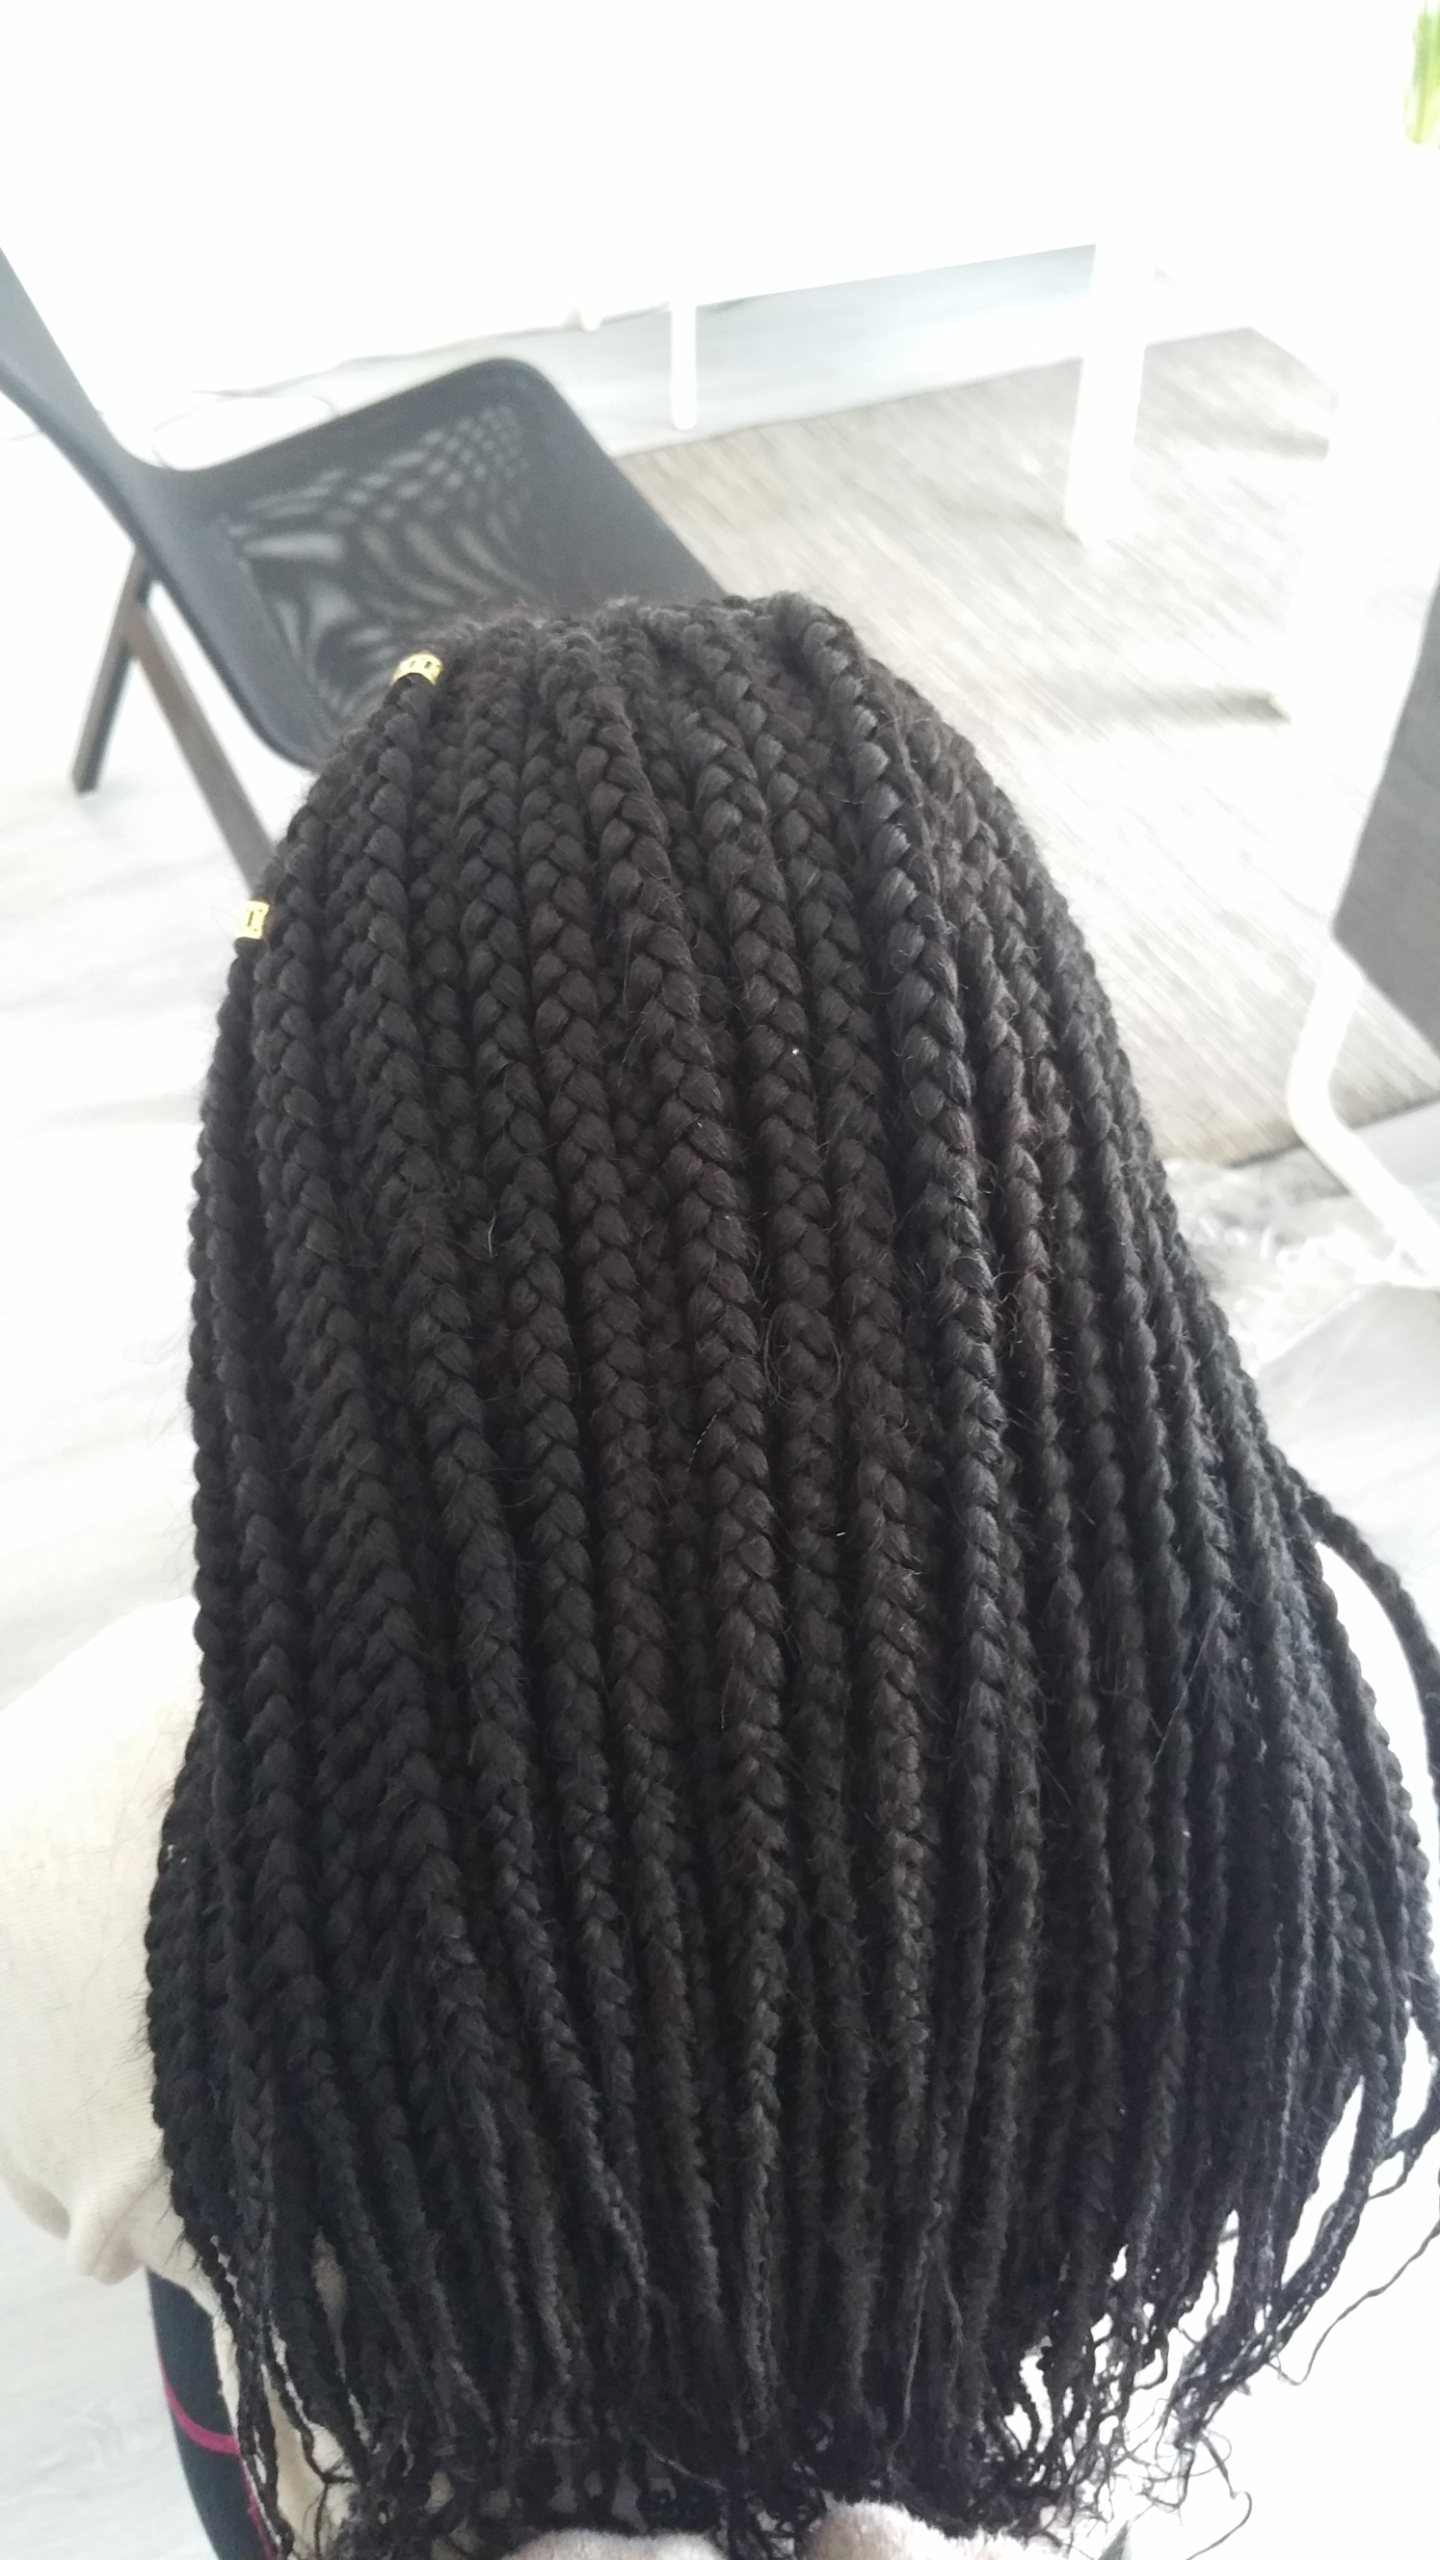 salon de coiffure afro tresse tresses box braids crochet braids vanilles tissages paris 75 77 78 91 92 93 94 95 SGMZICPA